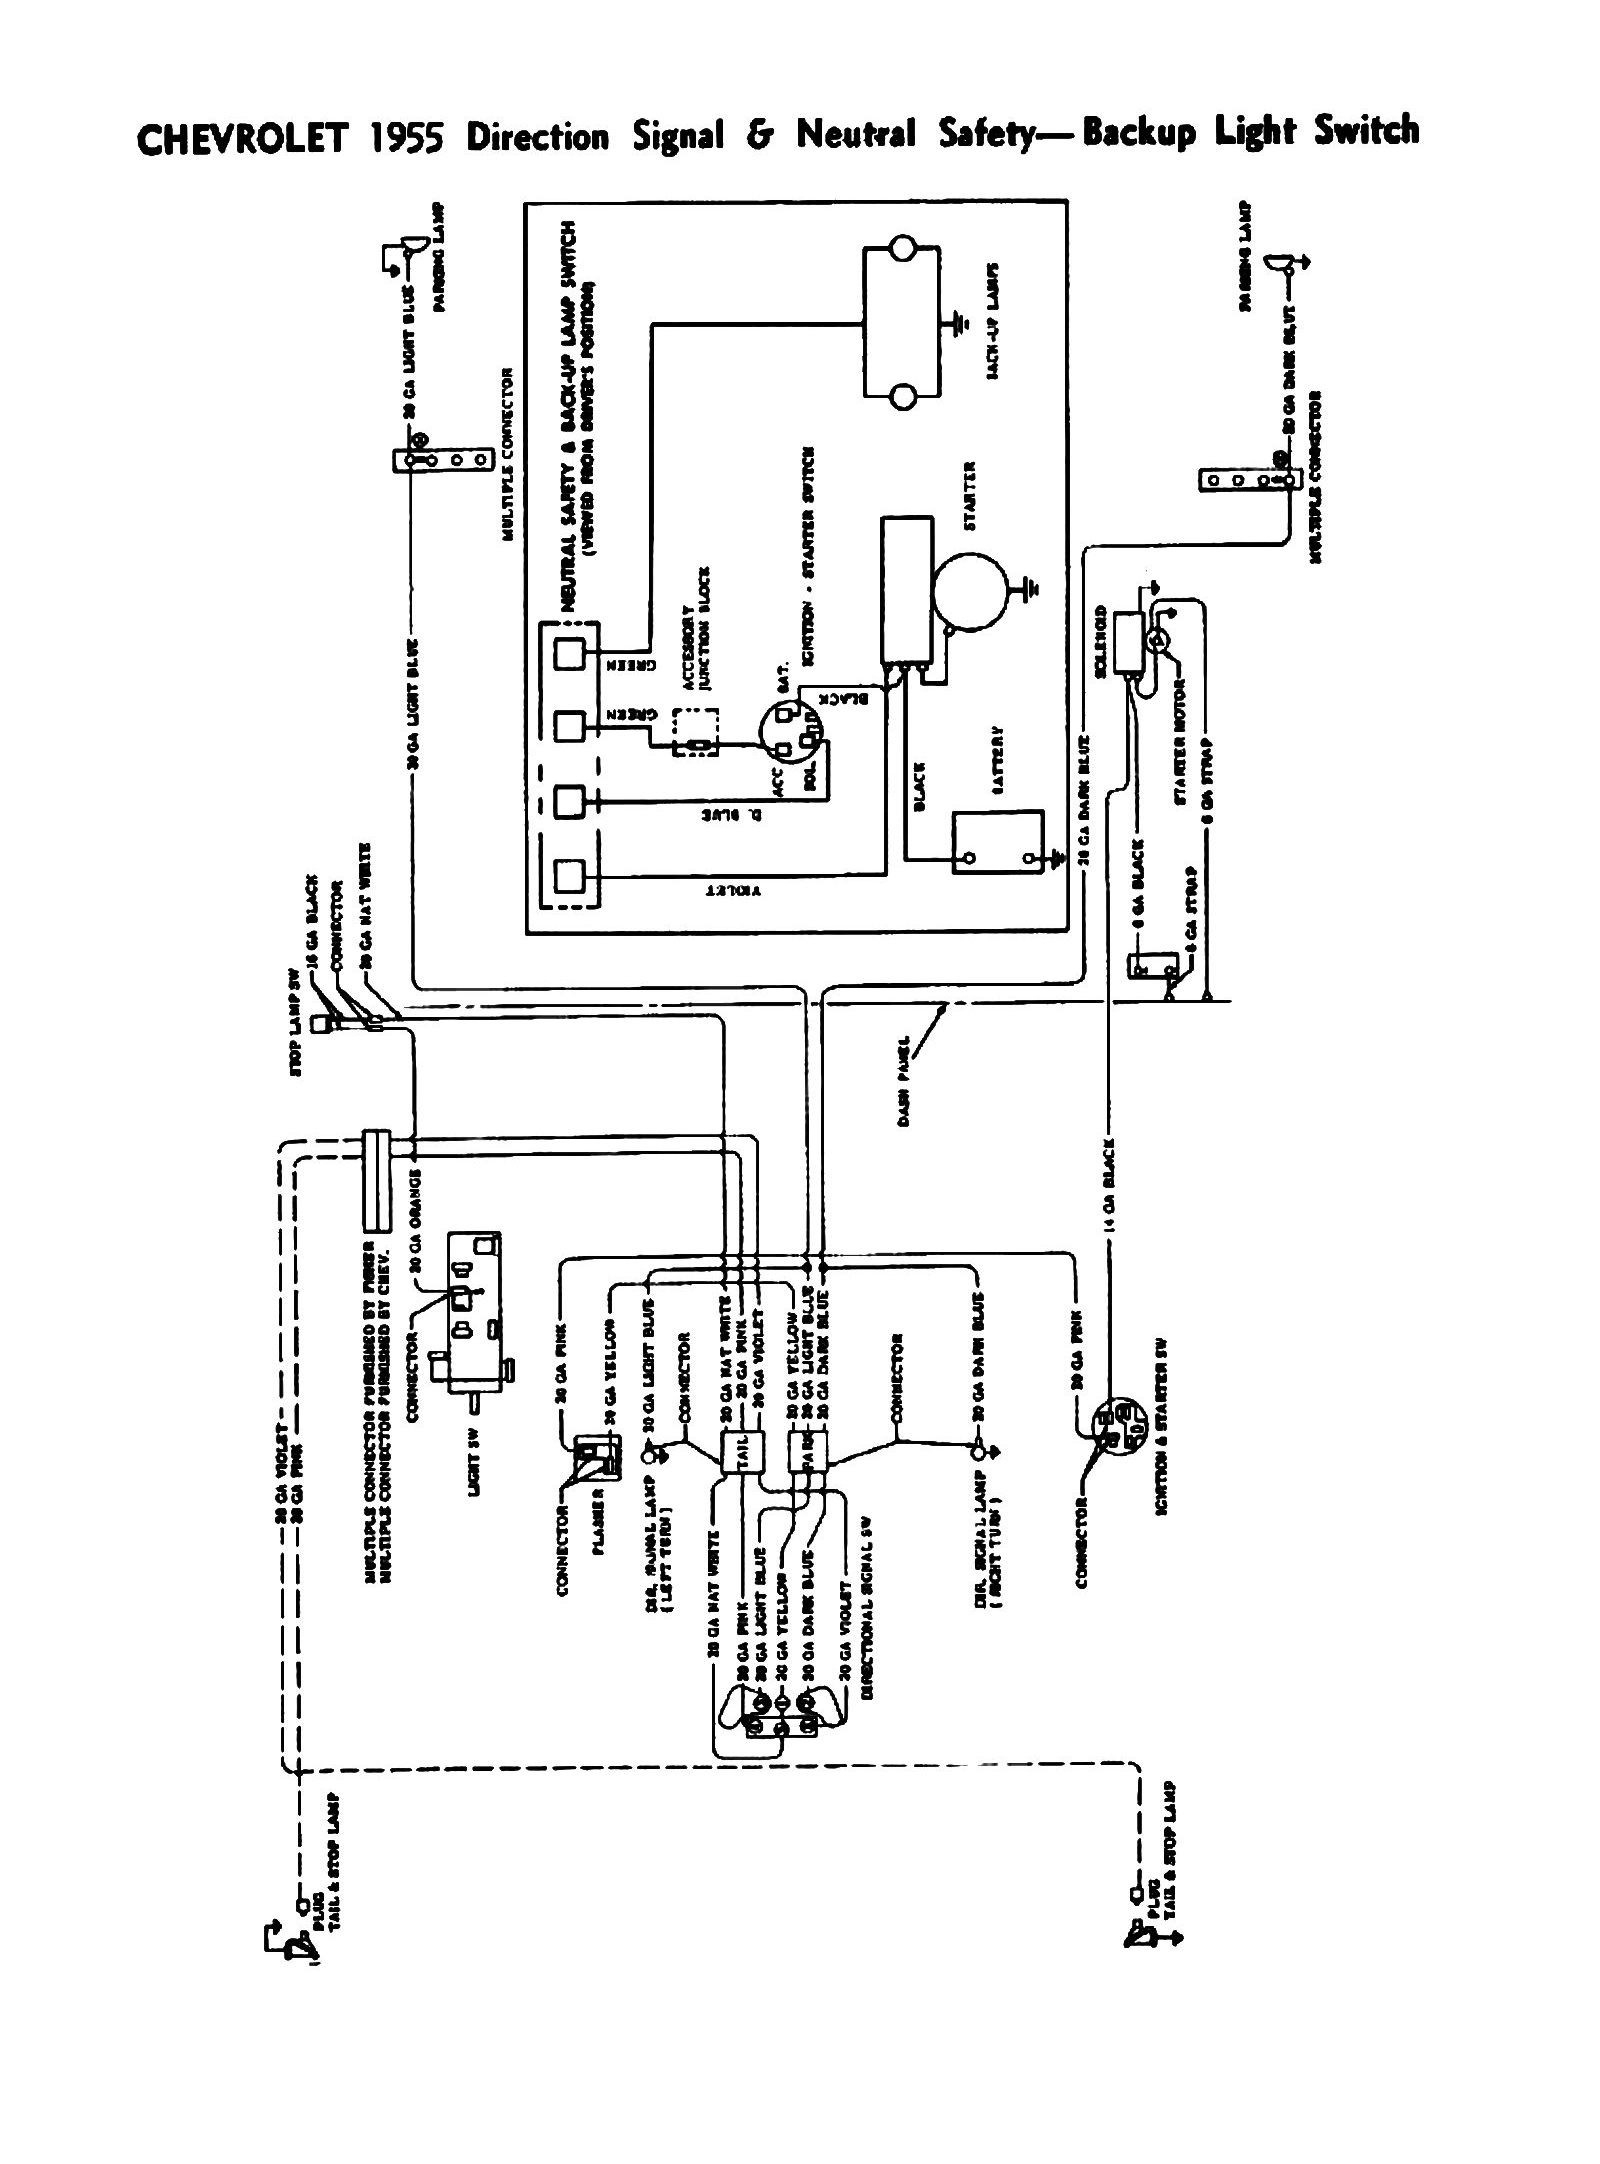 1957 Ford Fairlane Wiring Diagram. Ford. Wiring Diagram Images